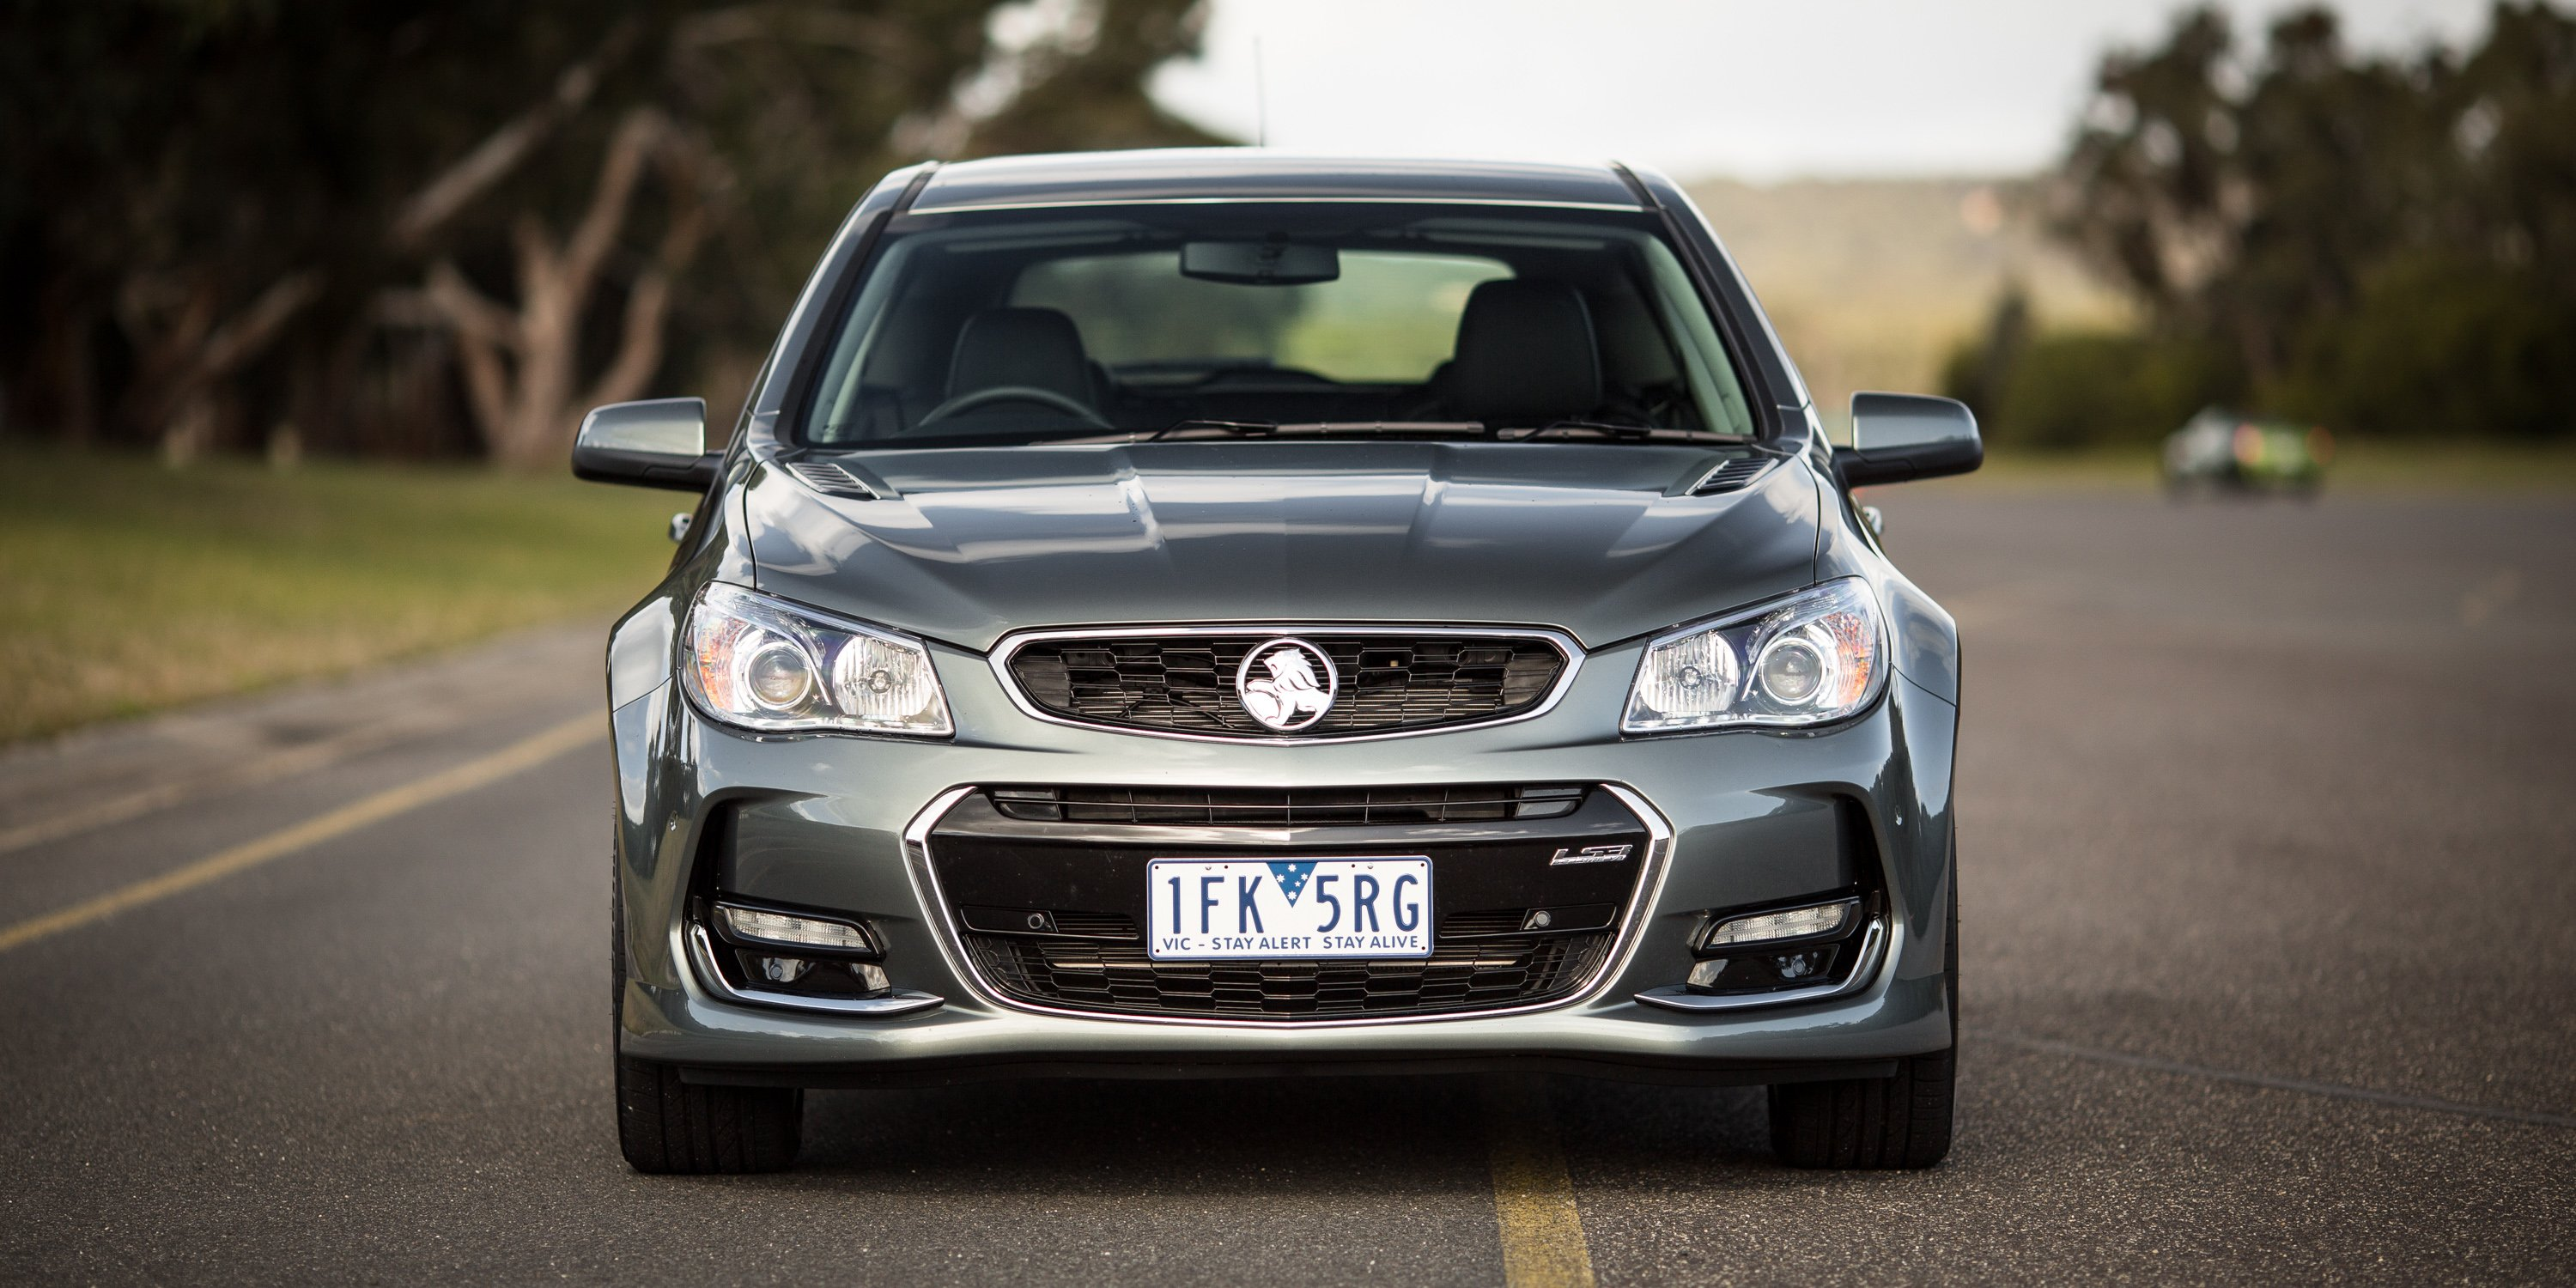 2016 Holden Commodore VFII review - photos | CarAdvice